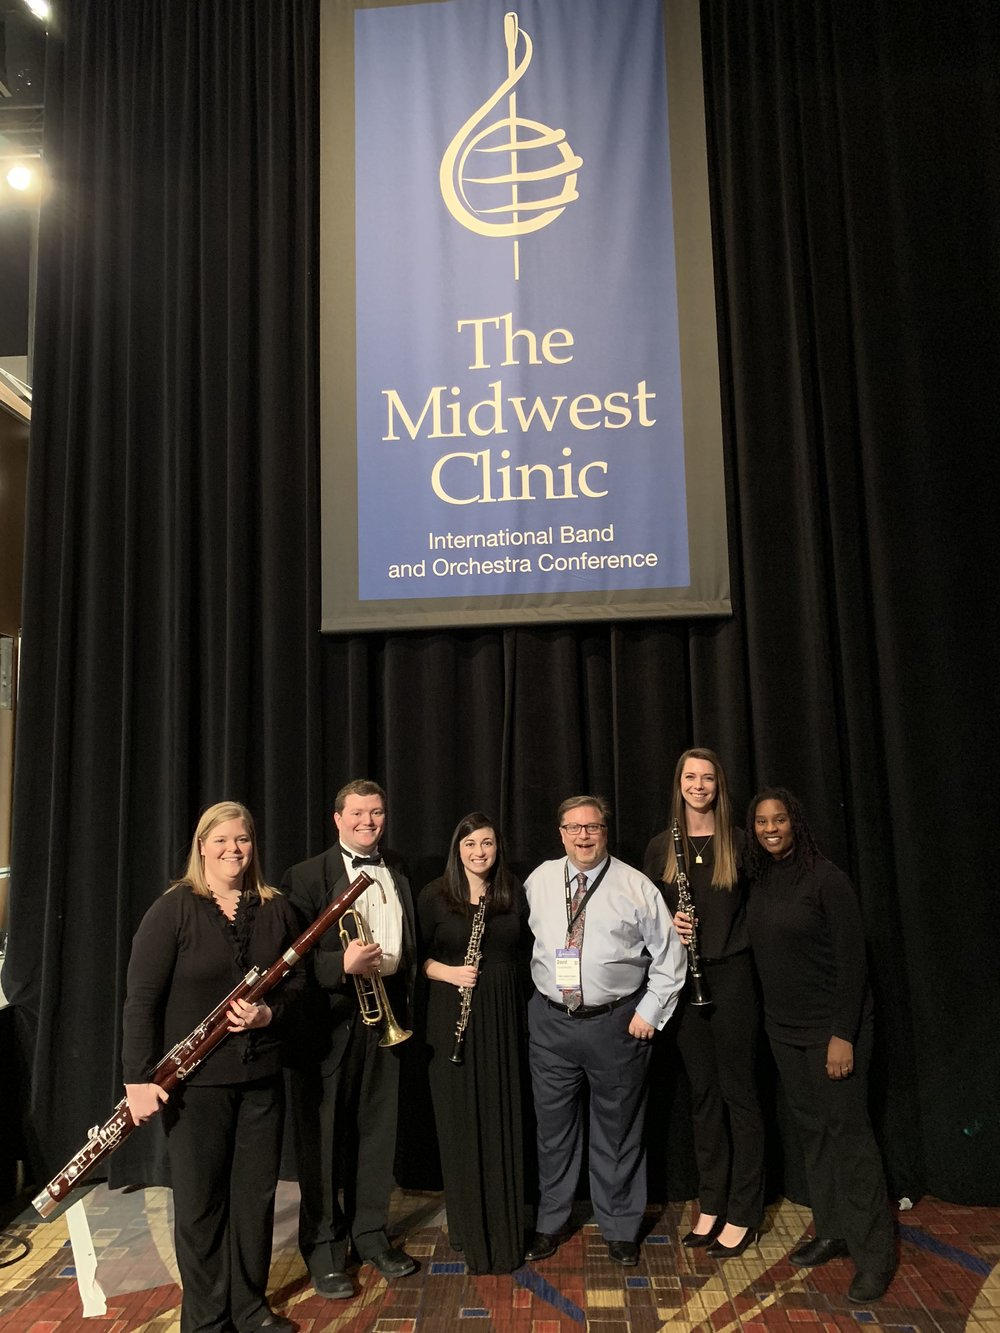 Mr. Soloff at the Midwest Clinic!